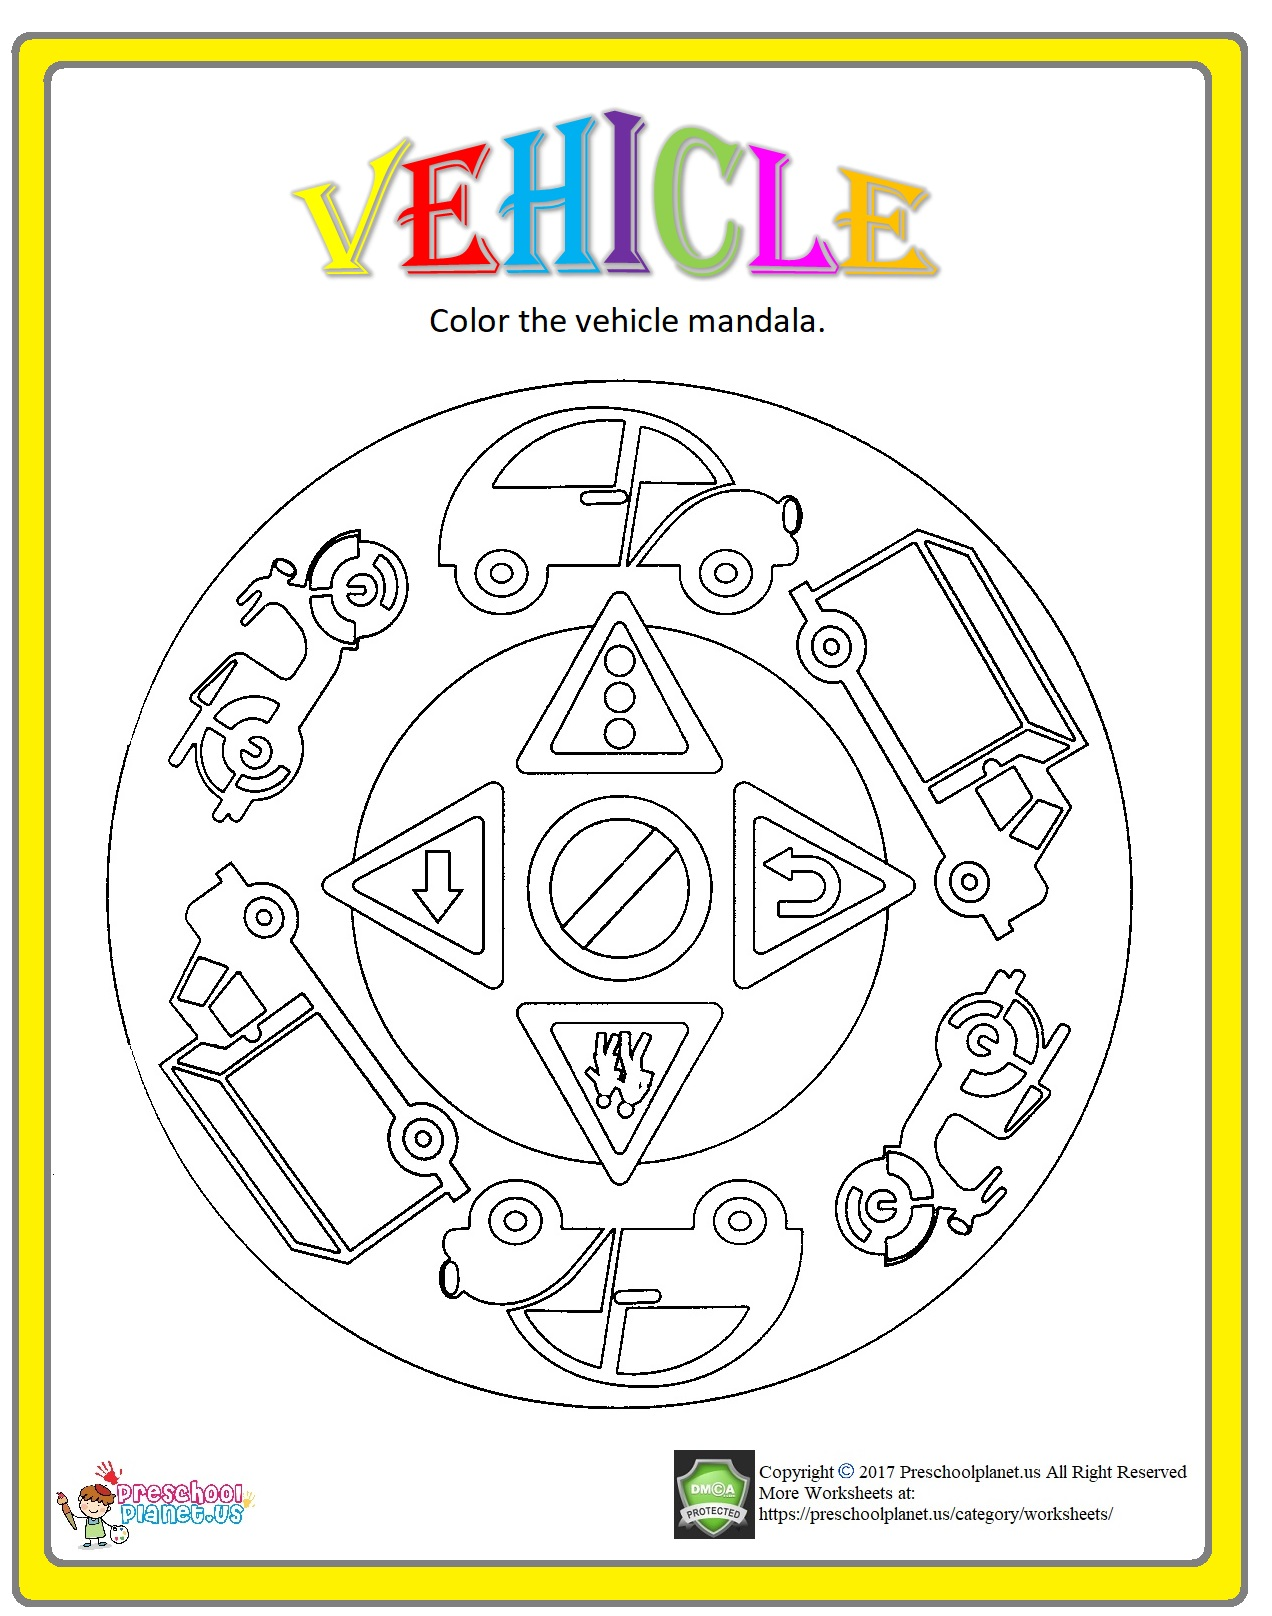 vehicle mandala coloring